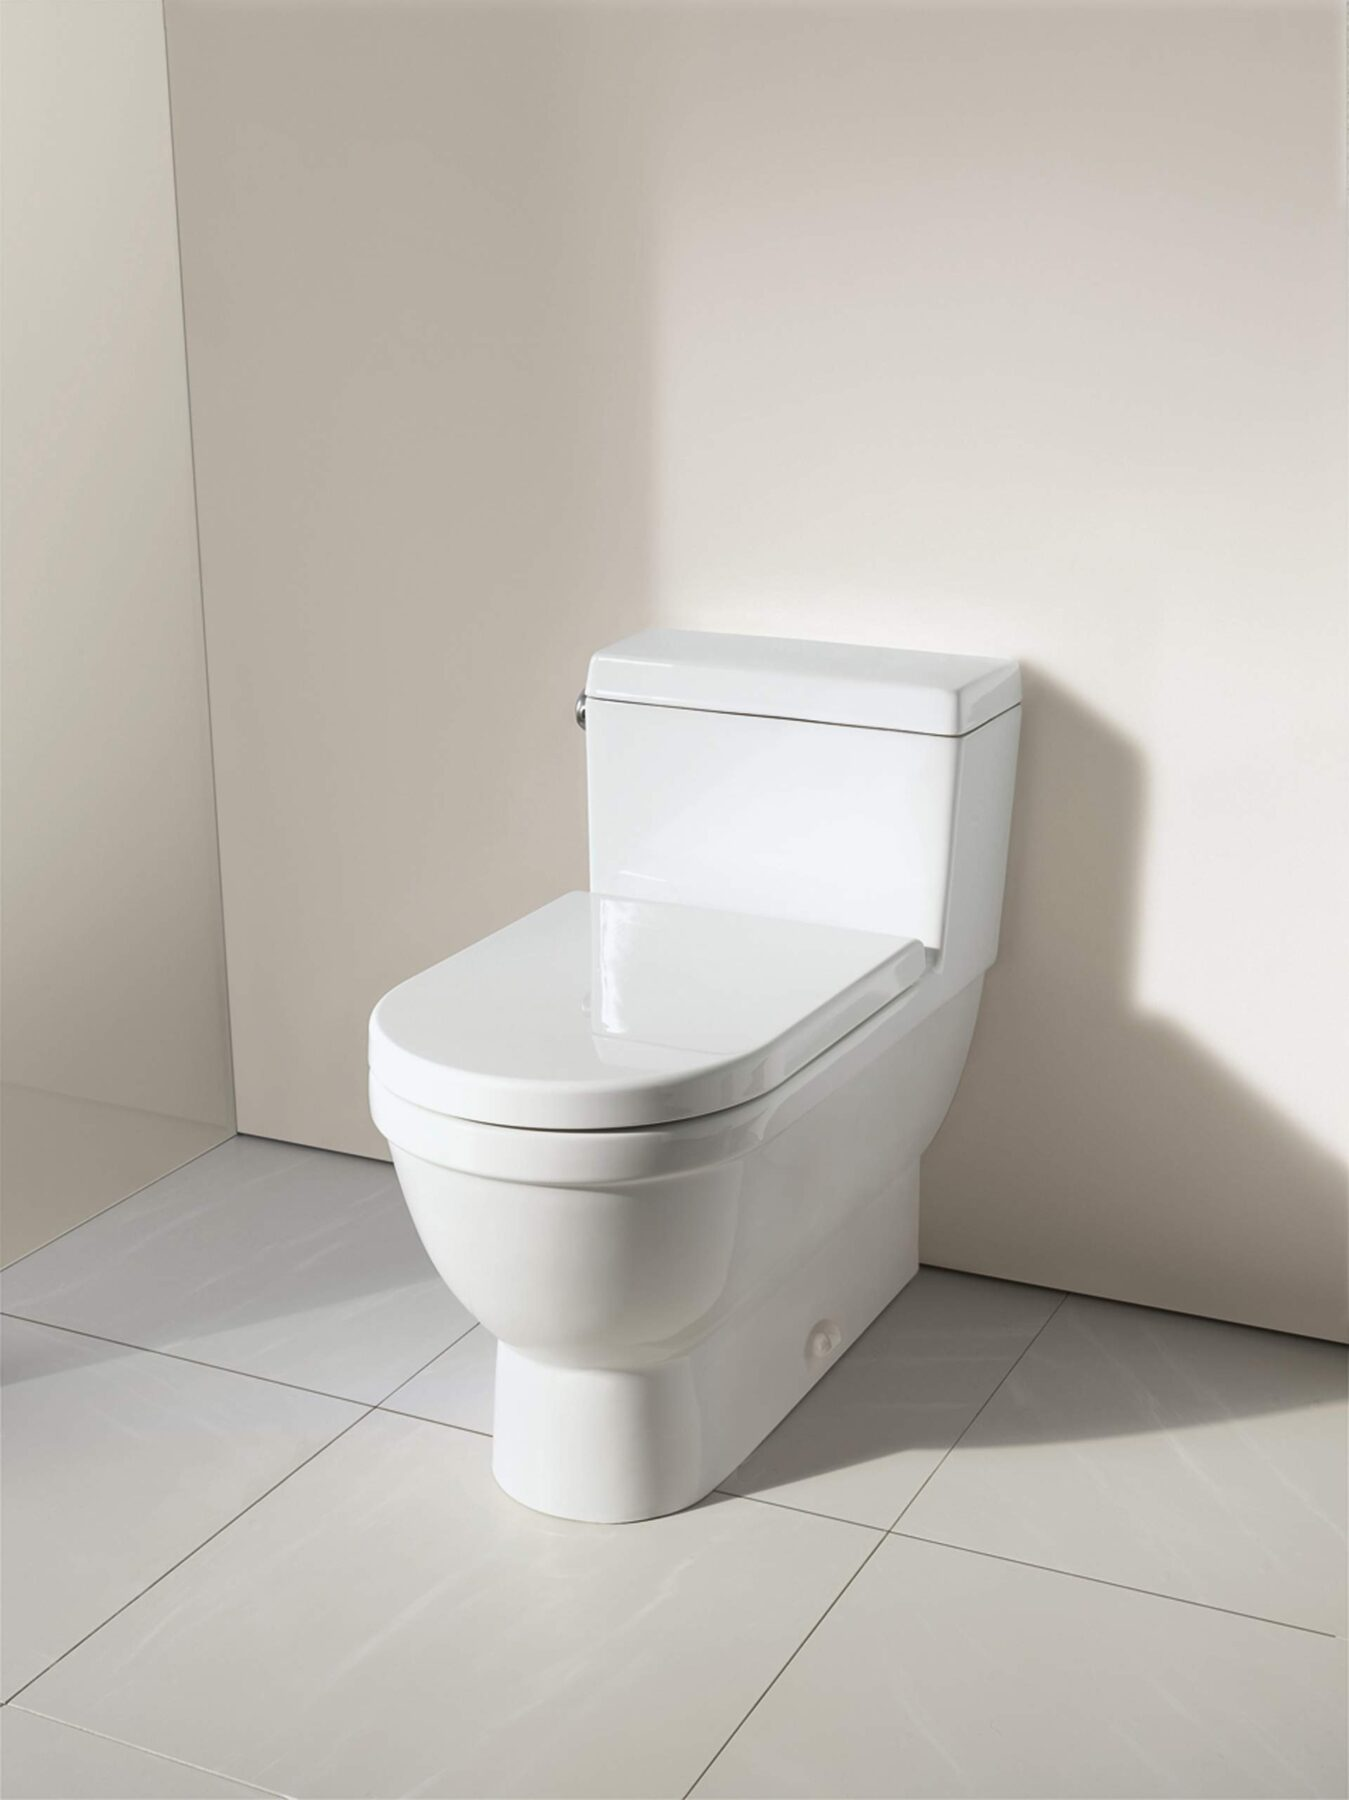 duravit toilets for sale faucet duravit starck 3 one piece toilet duravit series close. Black Bedroom Furniture Sets. Home Design Ideas